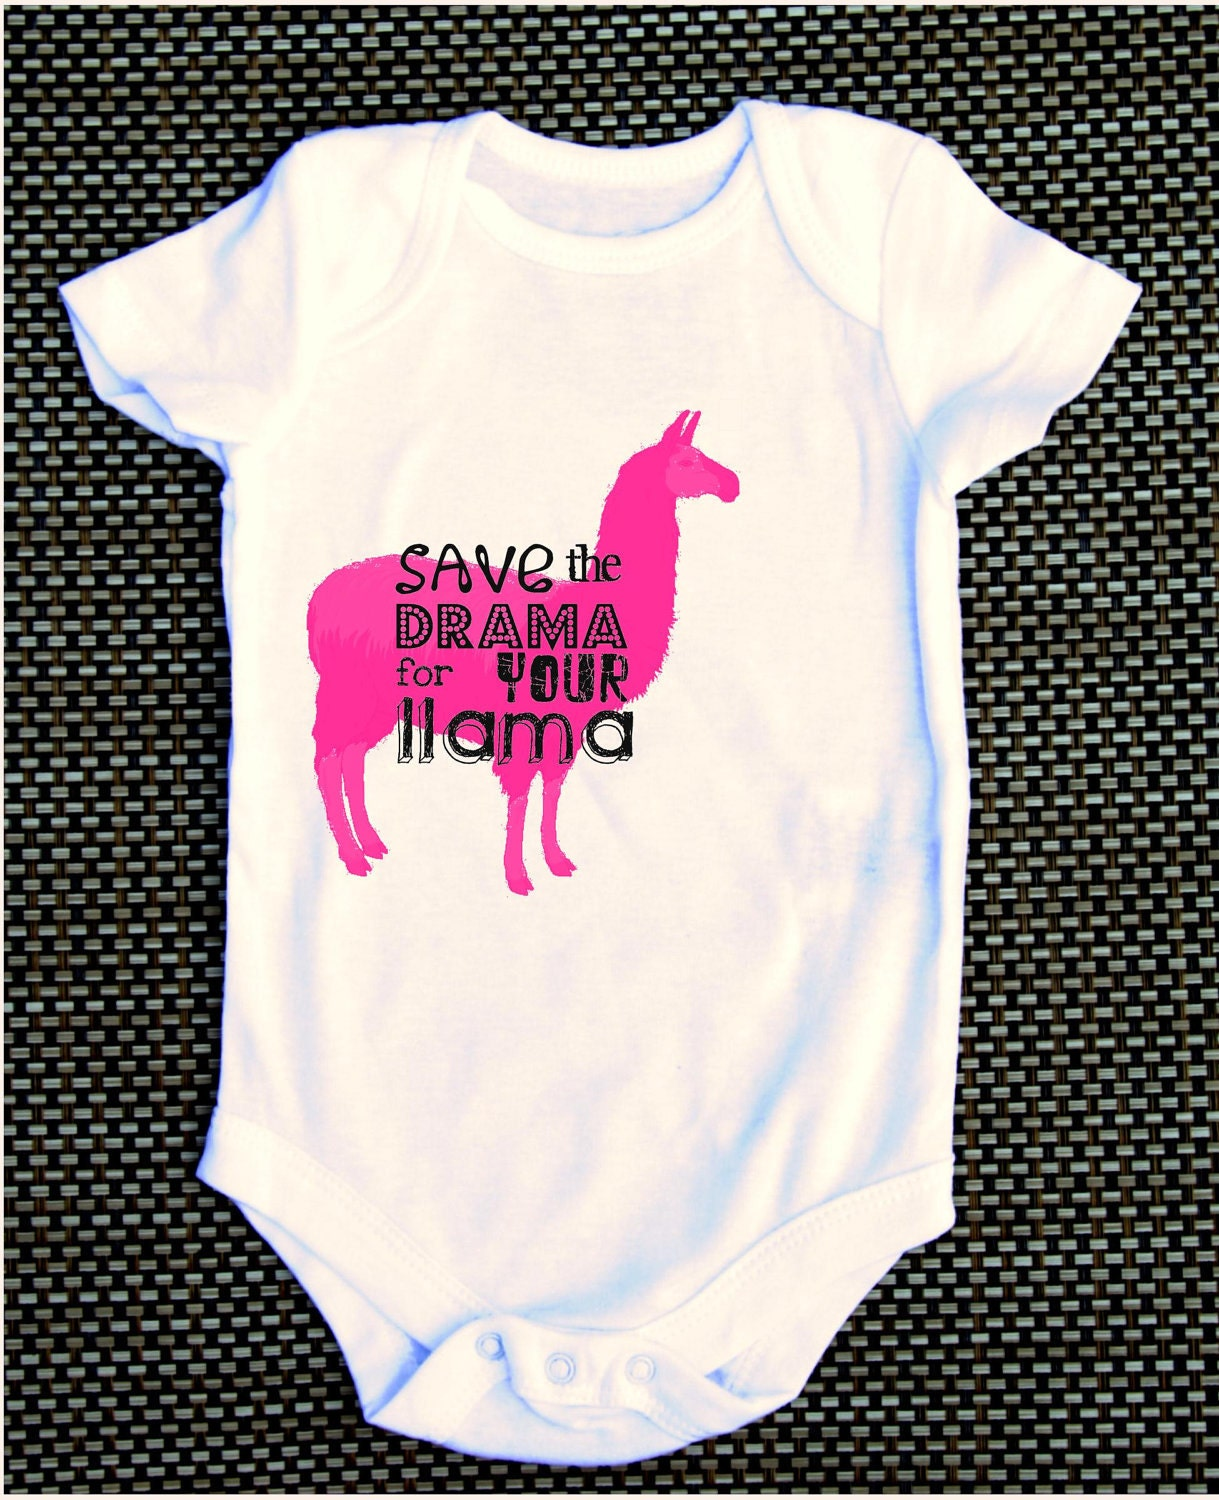 Save The Drama For Your Llama Funny Baby Onesie